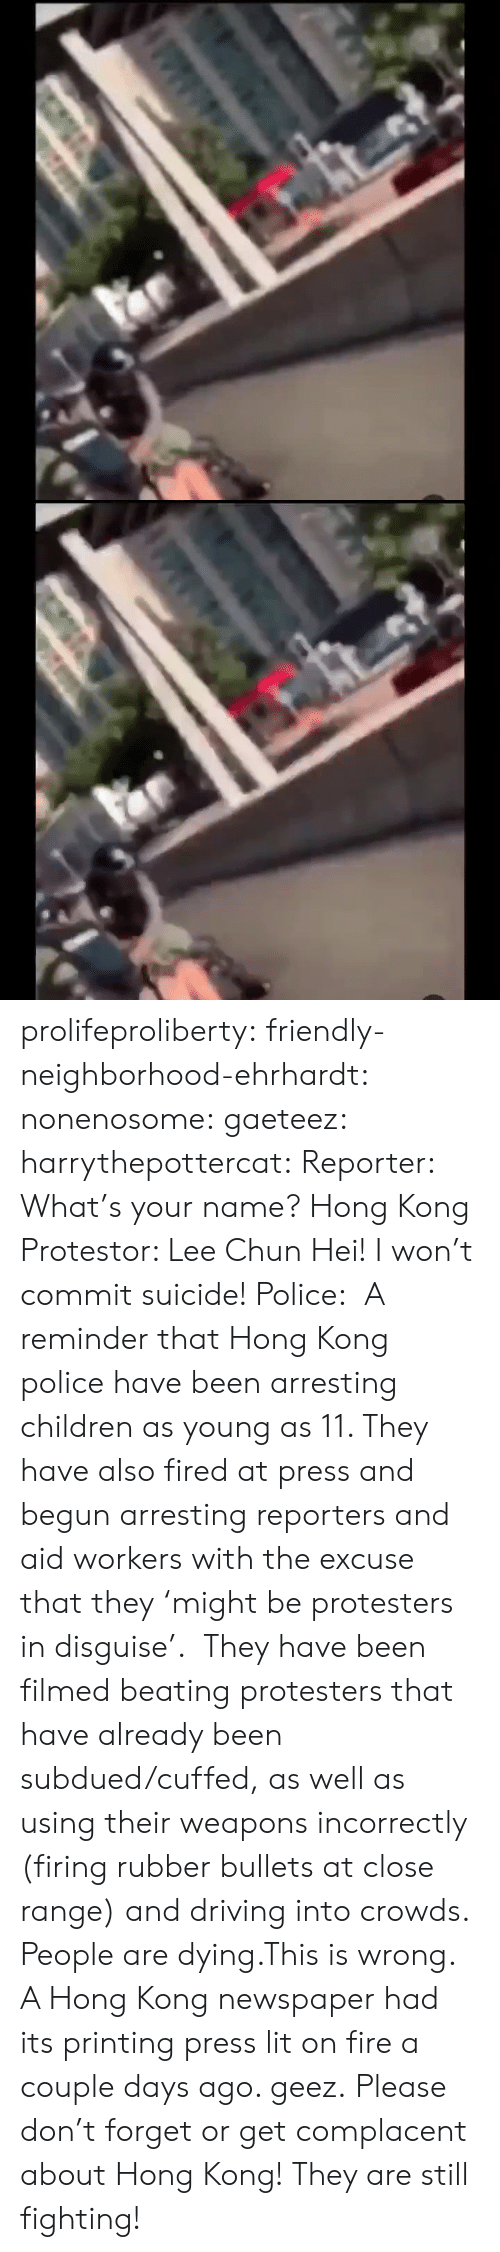 Begun: के.  ॥ल prolifeproliberty:  friendly-neighborhood-ehrhardt:  nonenosome:  gaeteez:   harrythepottercat:  Reporter: What's your name? Hong Kong Protestor: Lee Chun Hei! I won't commit suicide! Police:    A reminder that Hong Kong police have been arresting children as young as 11. They have also fired at press and begun arresting reporters and aid workers with the excuse that they 'might be protesters in disguise'.  They have been filmed beating protesters that have already been subdued/cuffed, as well as using their weapons incorrectly (firing rubber bullets at close range) and driving into crowds.  People are dying.This is wrong.    A Hong Kong newspaper had its printing press lit on fire a couple days ago.   geez.   Please don't forget or get complacent about Hong Kong! They are still fighting!